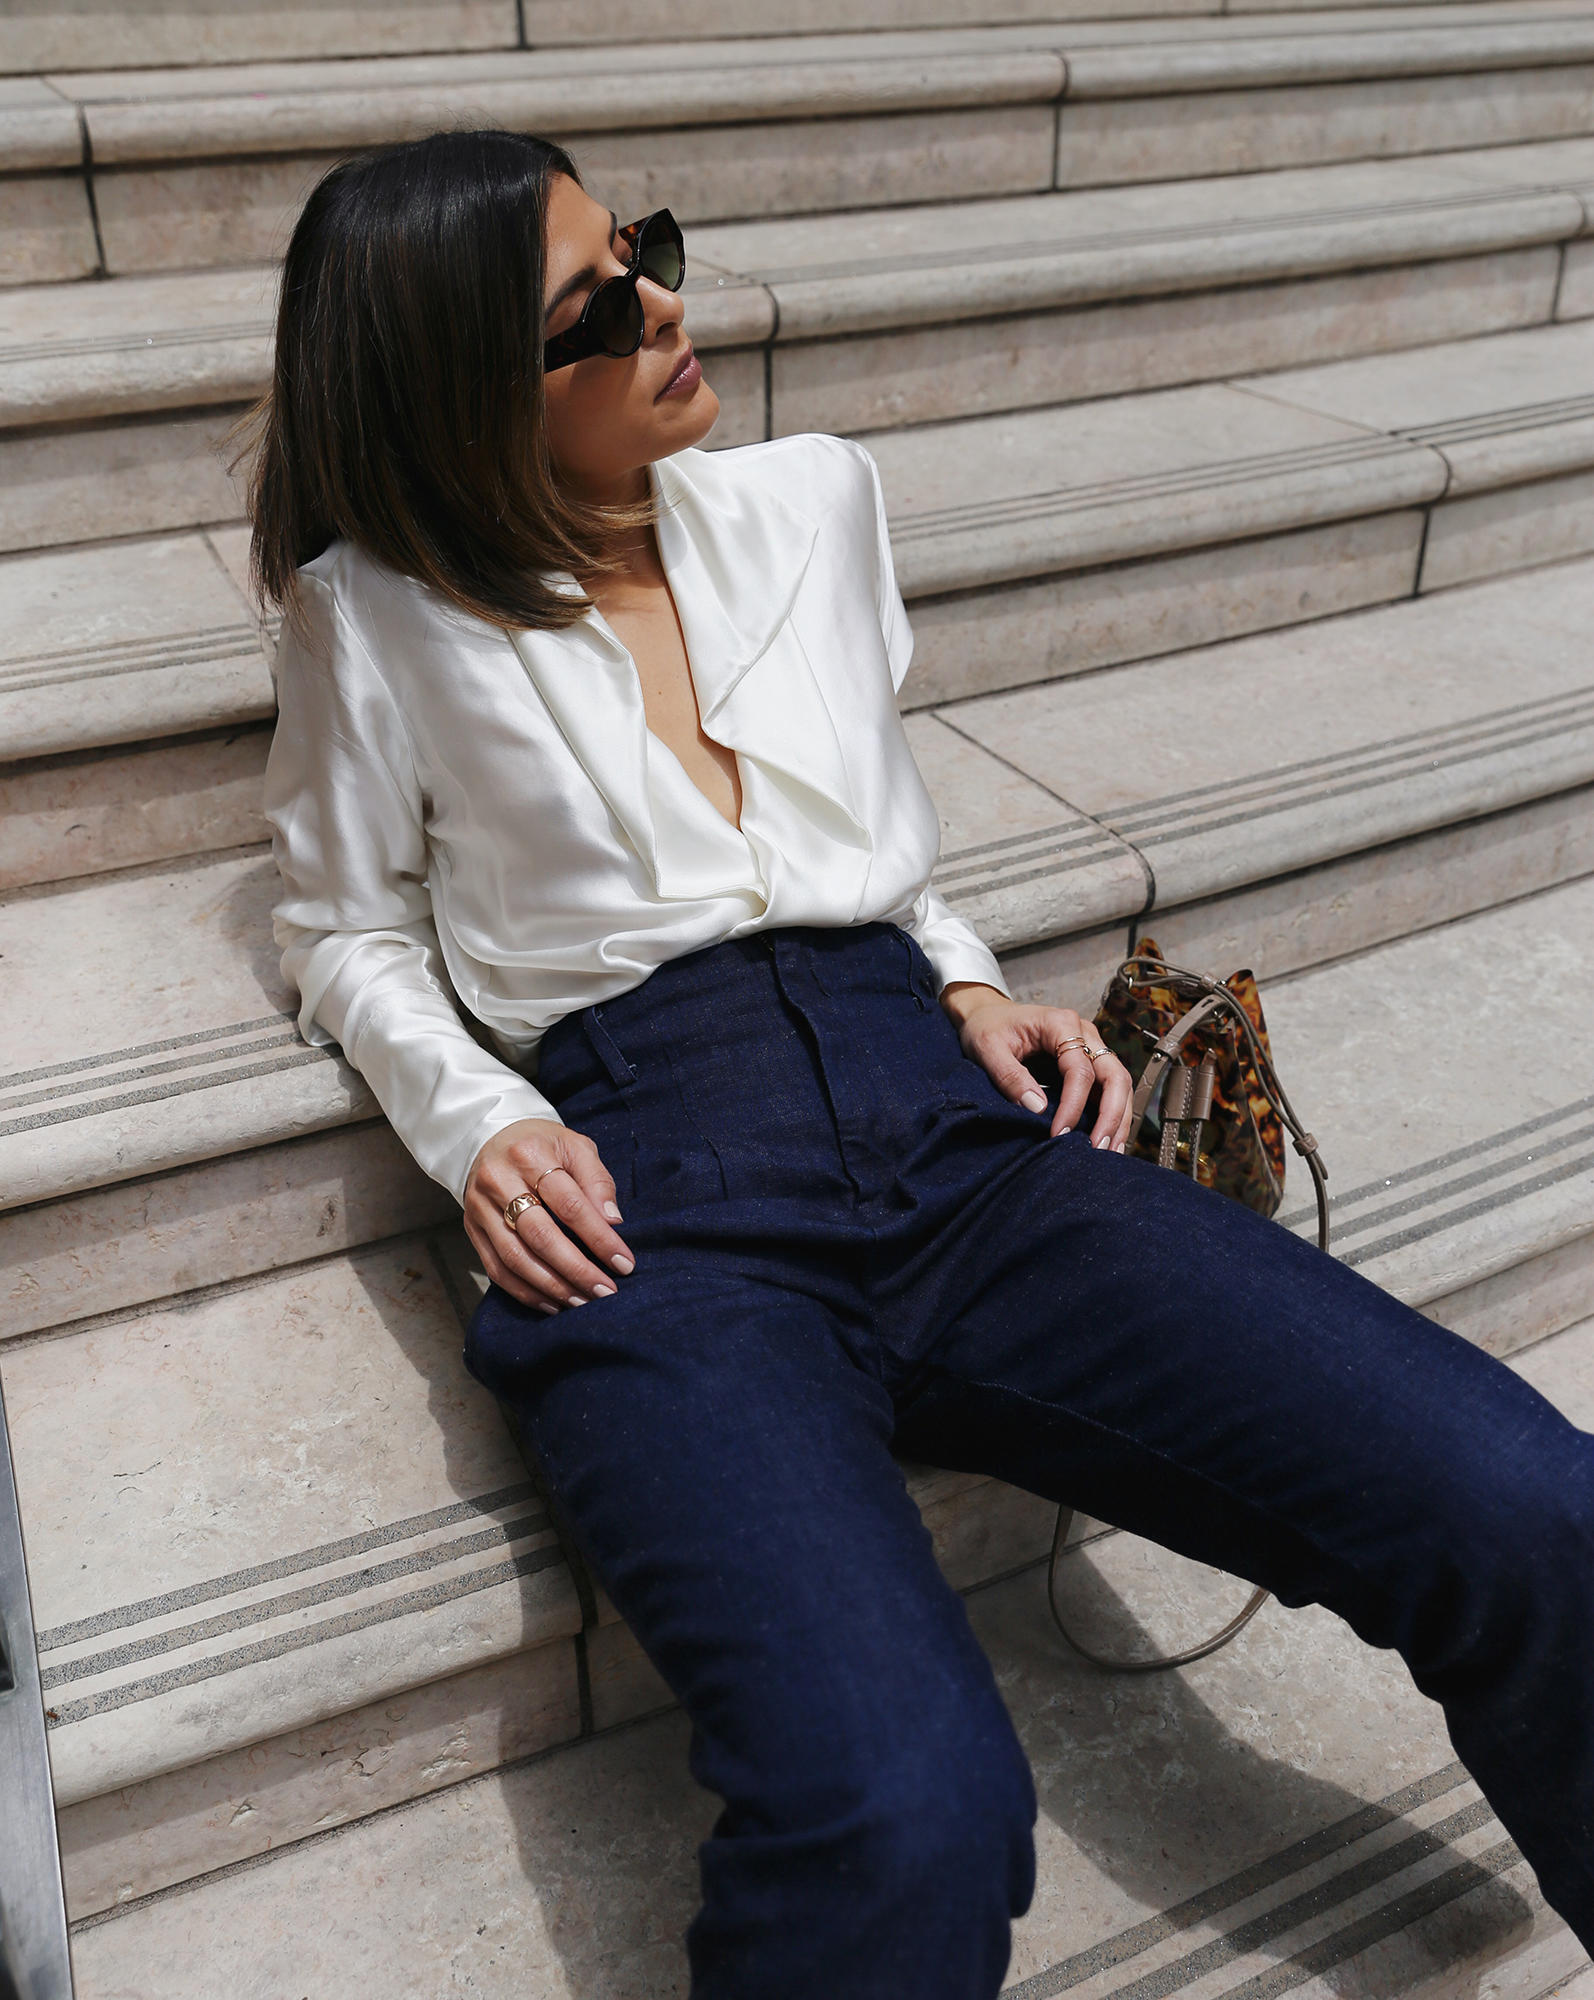 stylish white tops for summer, chic white tops, white blouse, chic blogger style, pam hetlinger style   the girl from panama